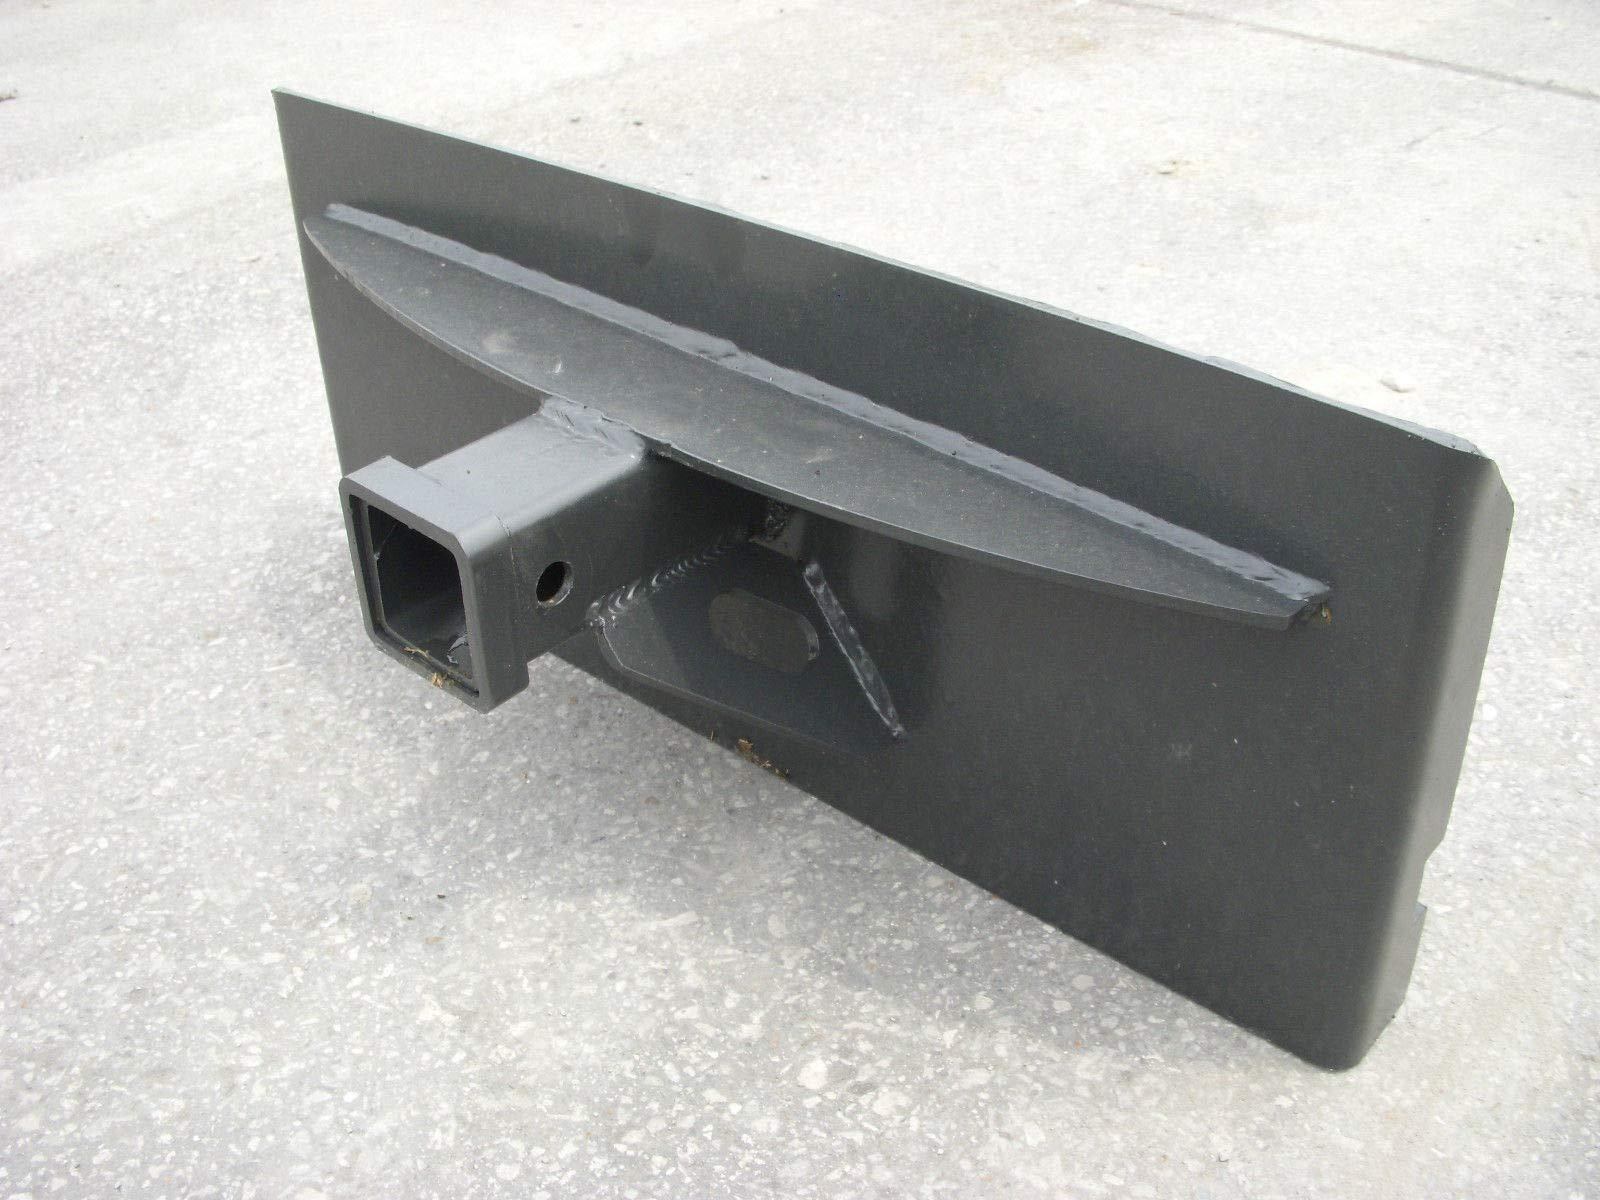 Trailer Receiver Hitch Attachment Toro Dingo Mini Skid Steer USA by Pro Works